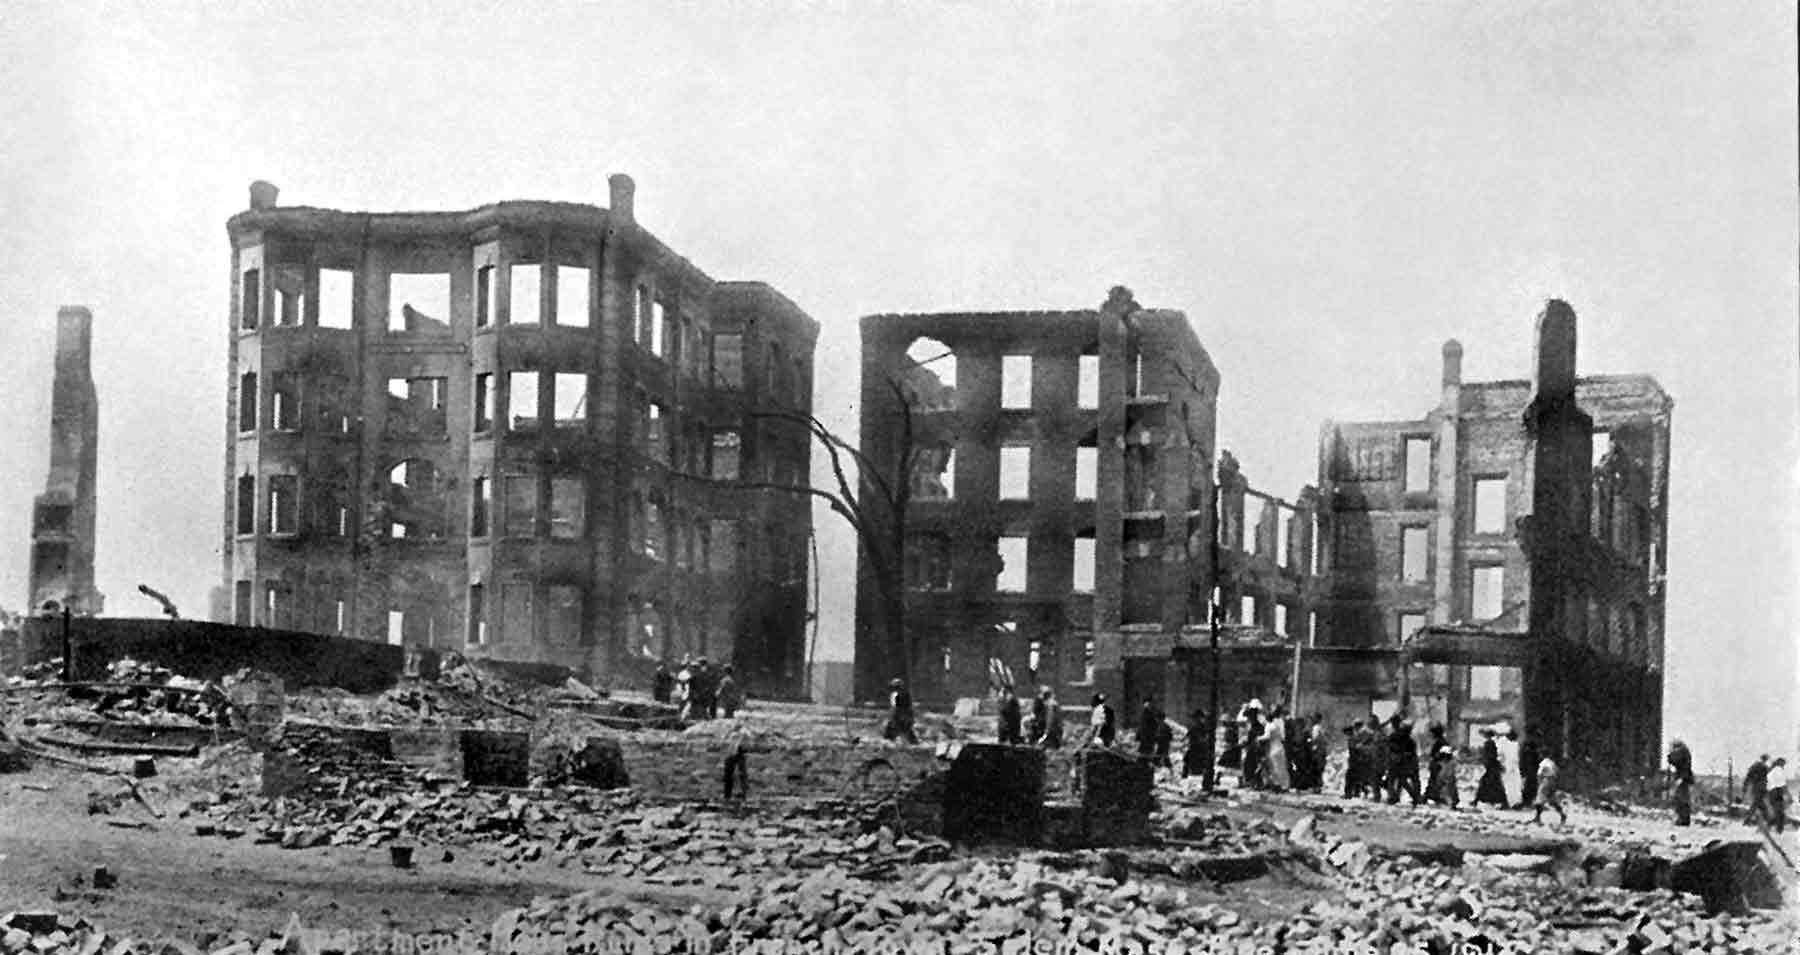 Photographer in Salem, Massachusetts, French District, destroyed apartments in the aftermath of the Great Salem Fire of 1914, June 26, 1914, Phillips Library, Salem Streets Collection, Negative #32851.